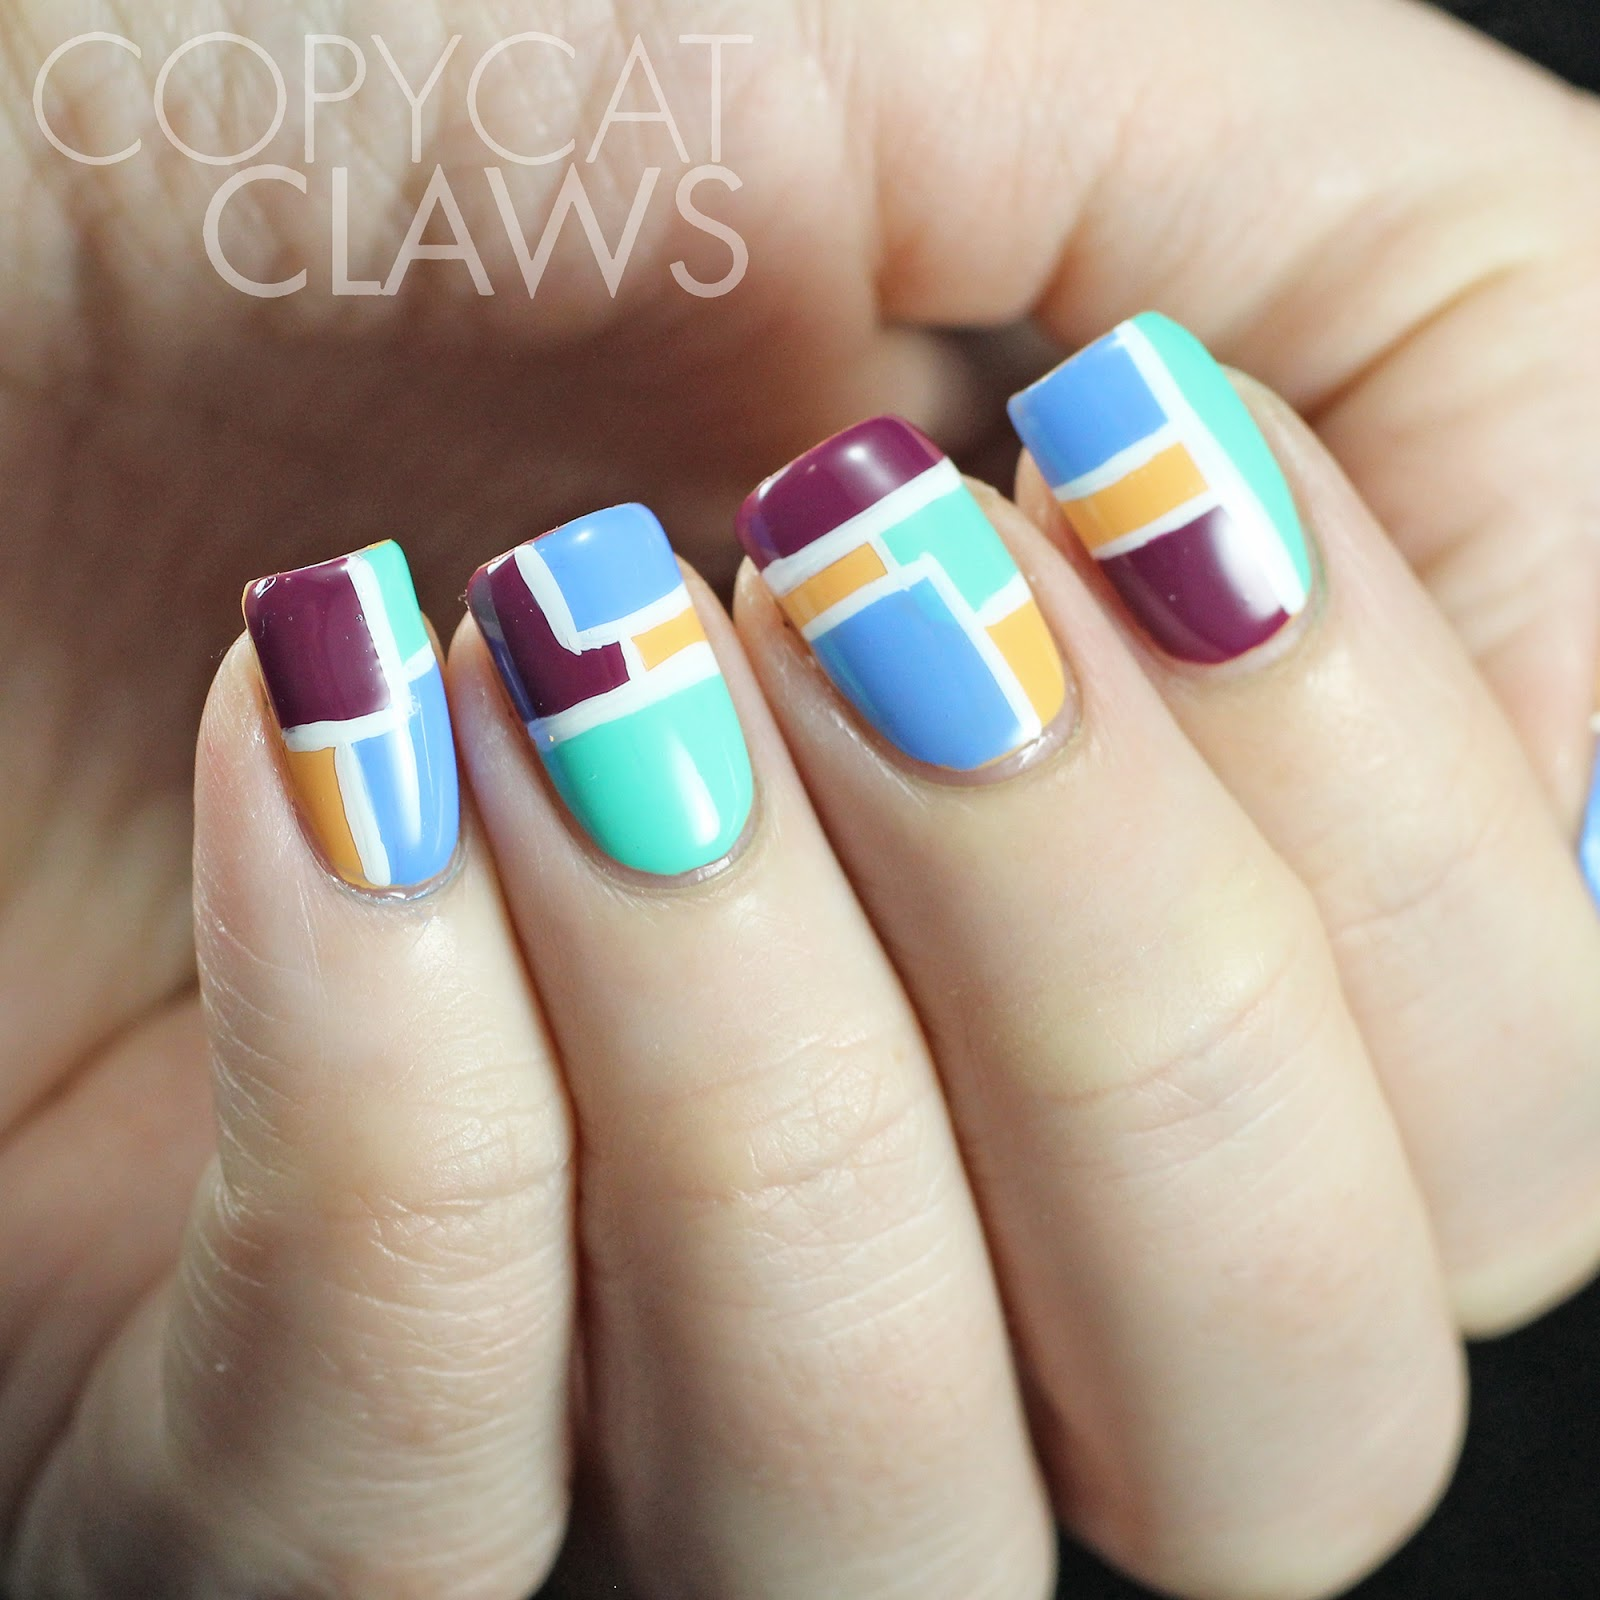 Copycat Claws Blue Color Block Nail Art: Copycat Claws: The Digit-al Dozen Does Geometric: Day 4